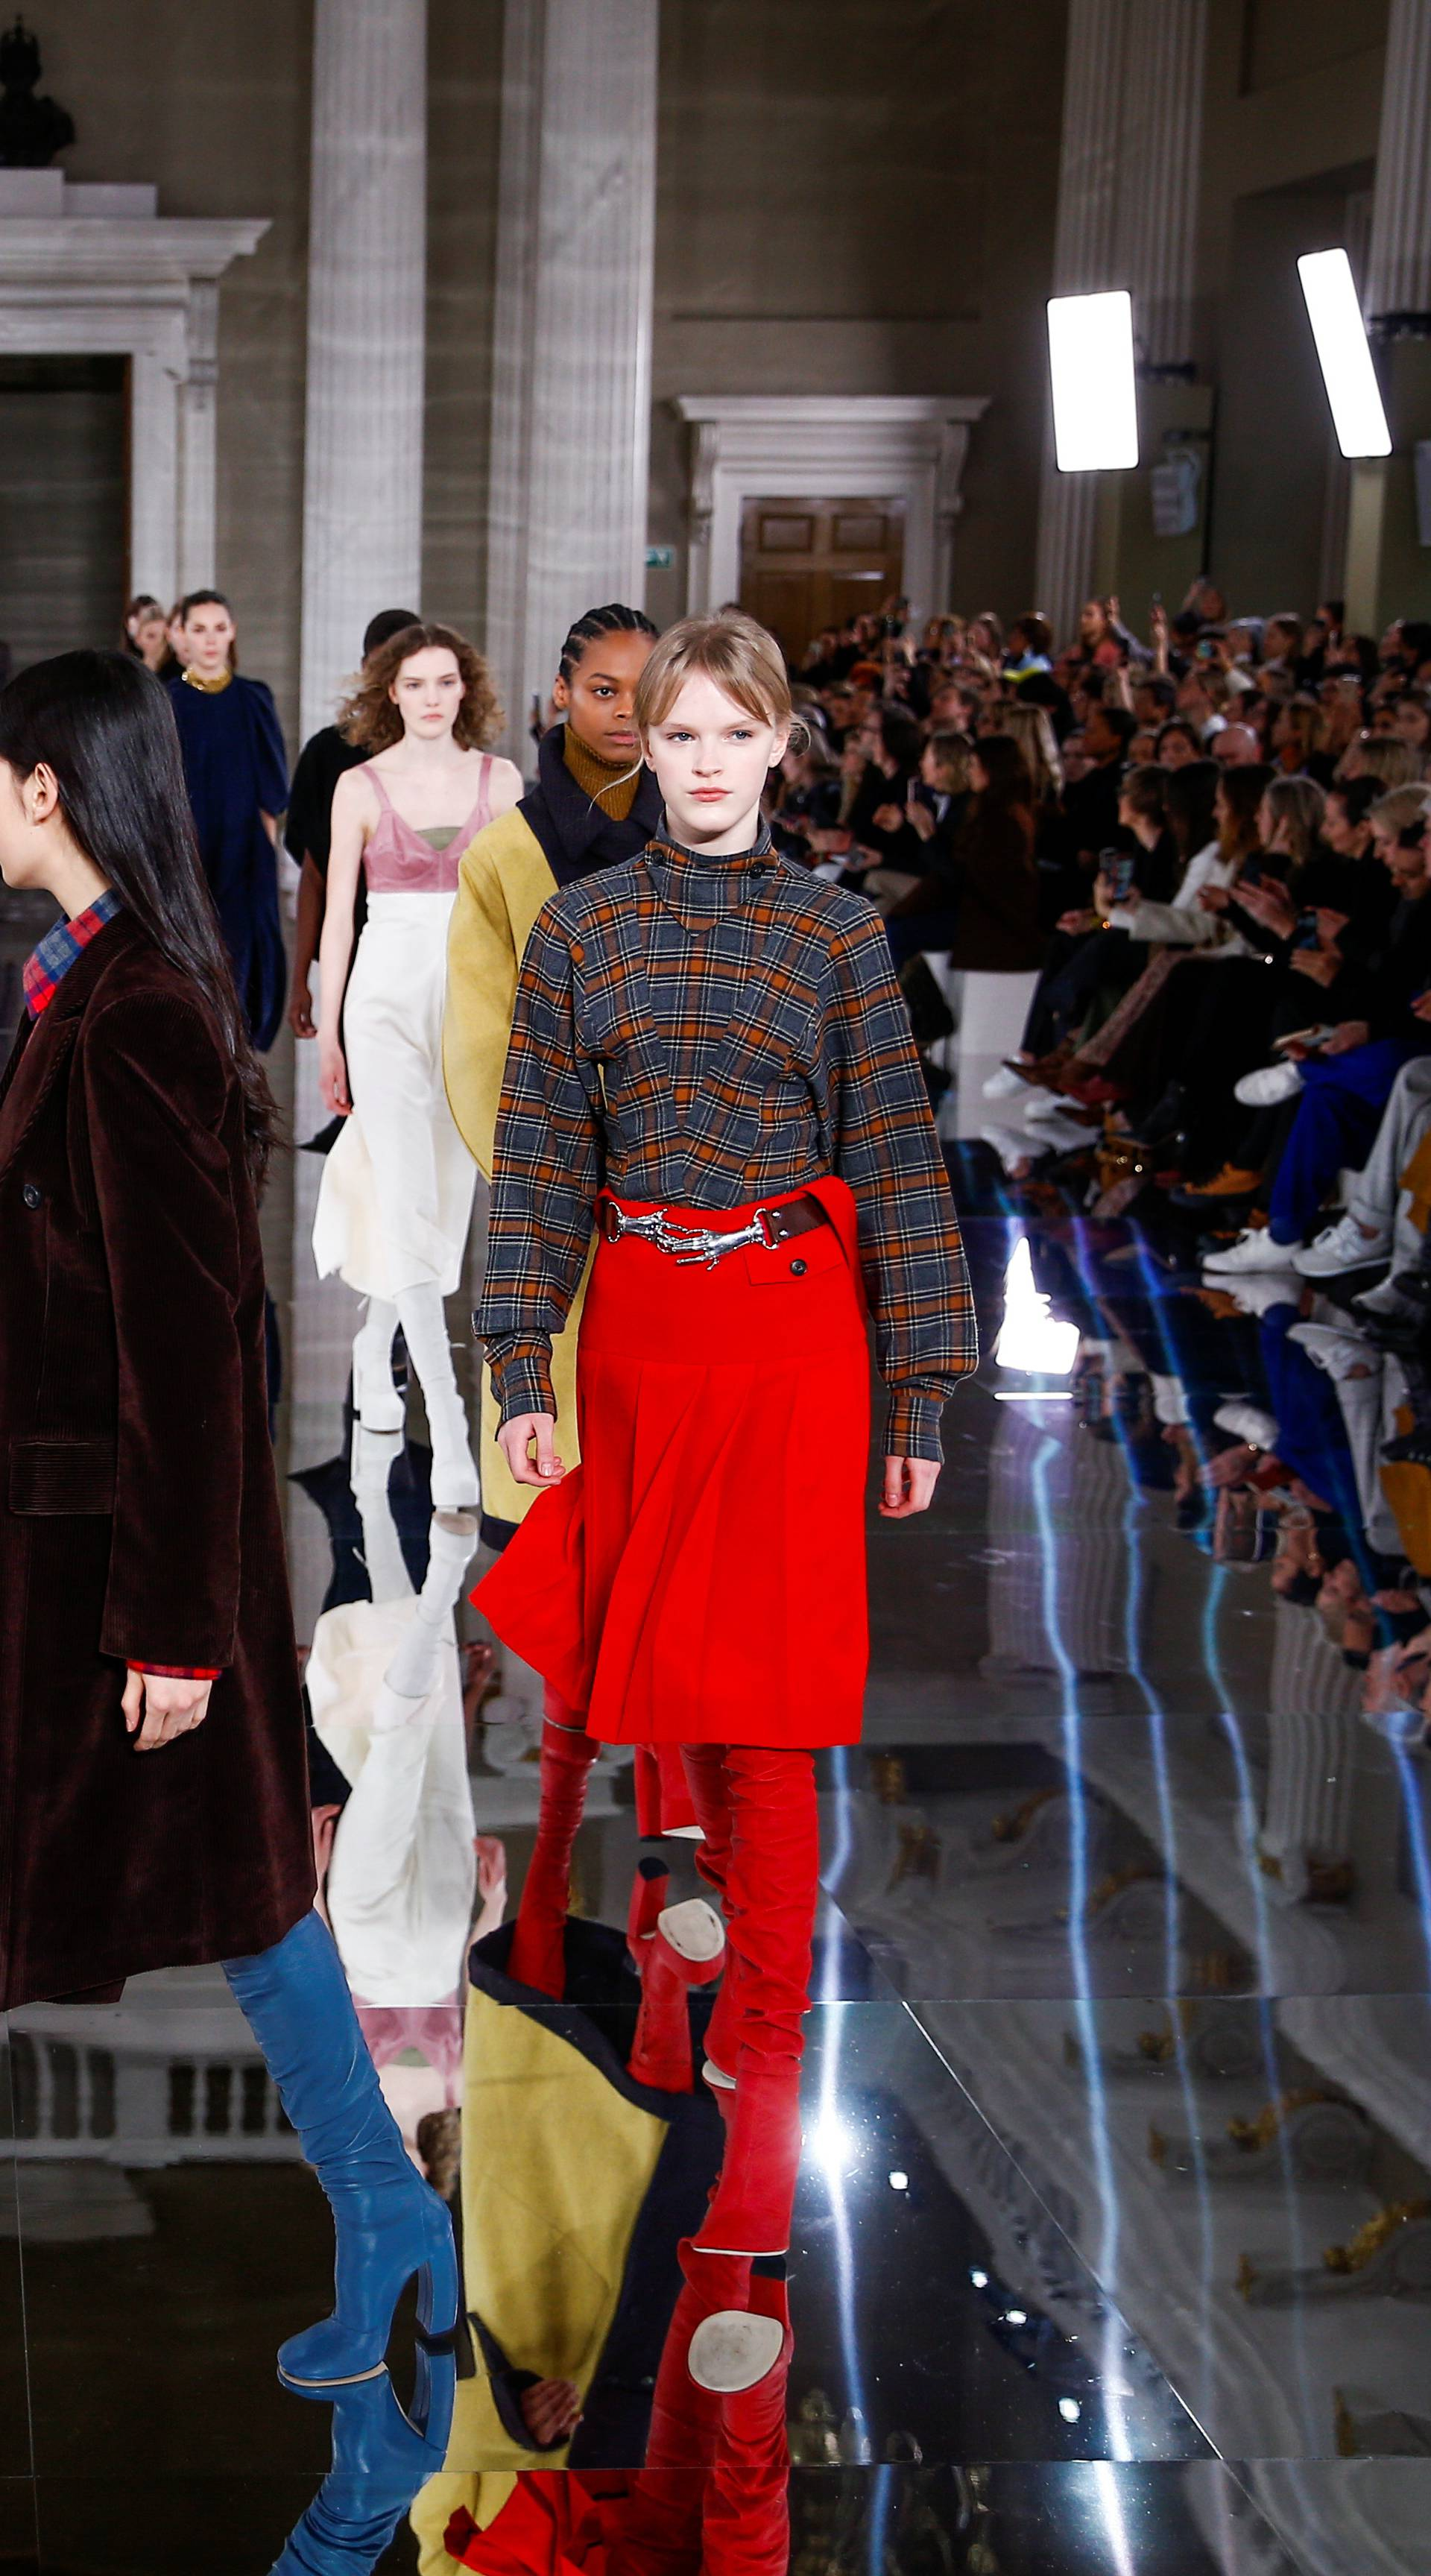 Models present creations at the Victoria Beckham catwalk show during London Fashion Week in London